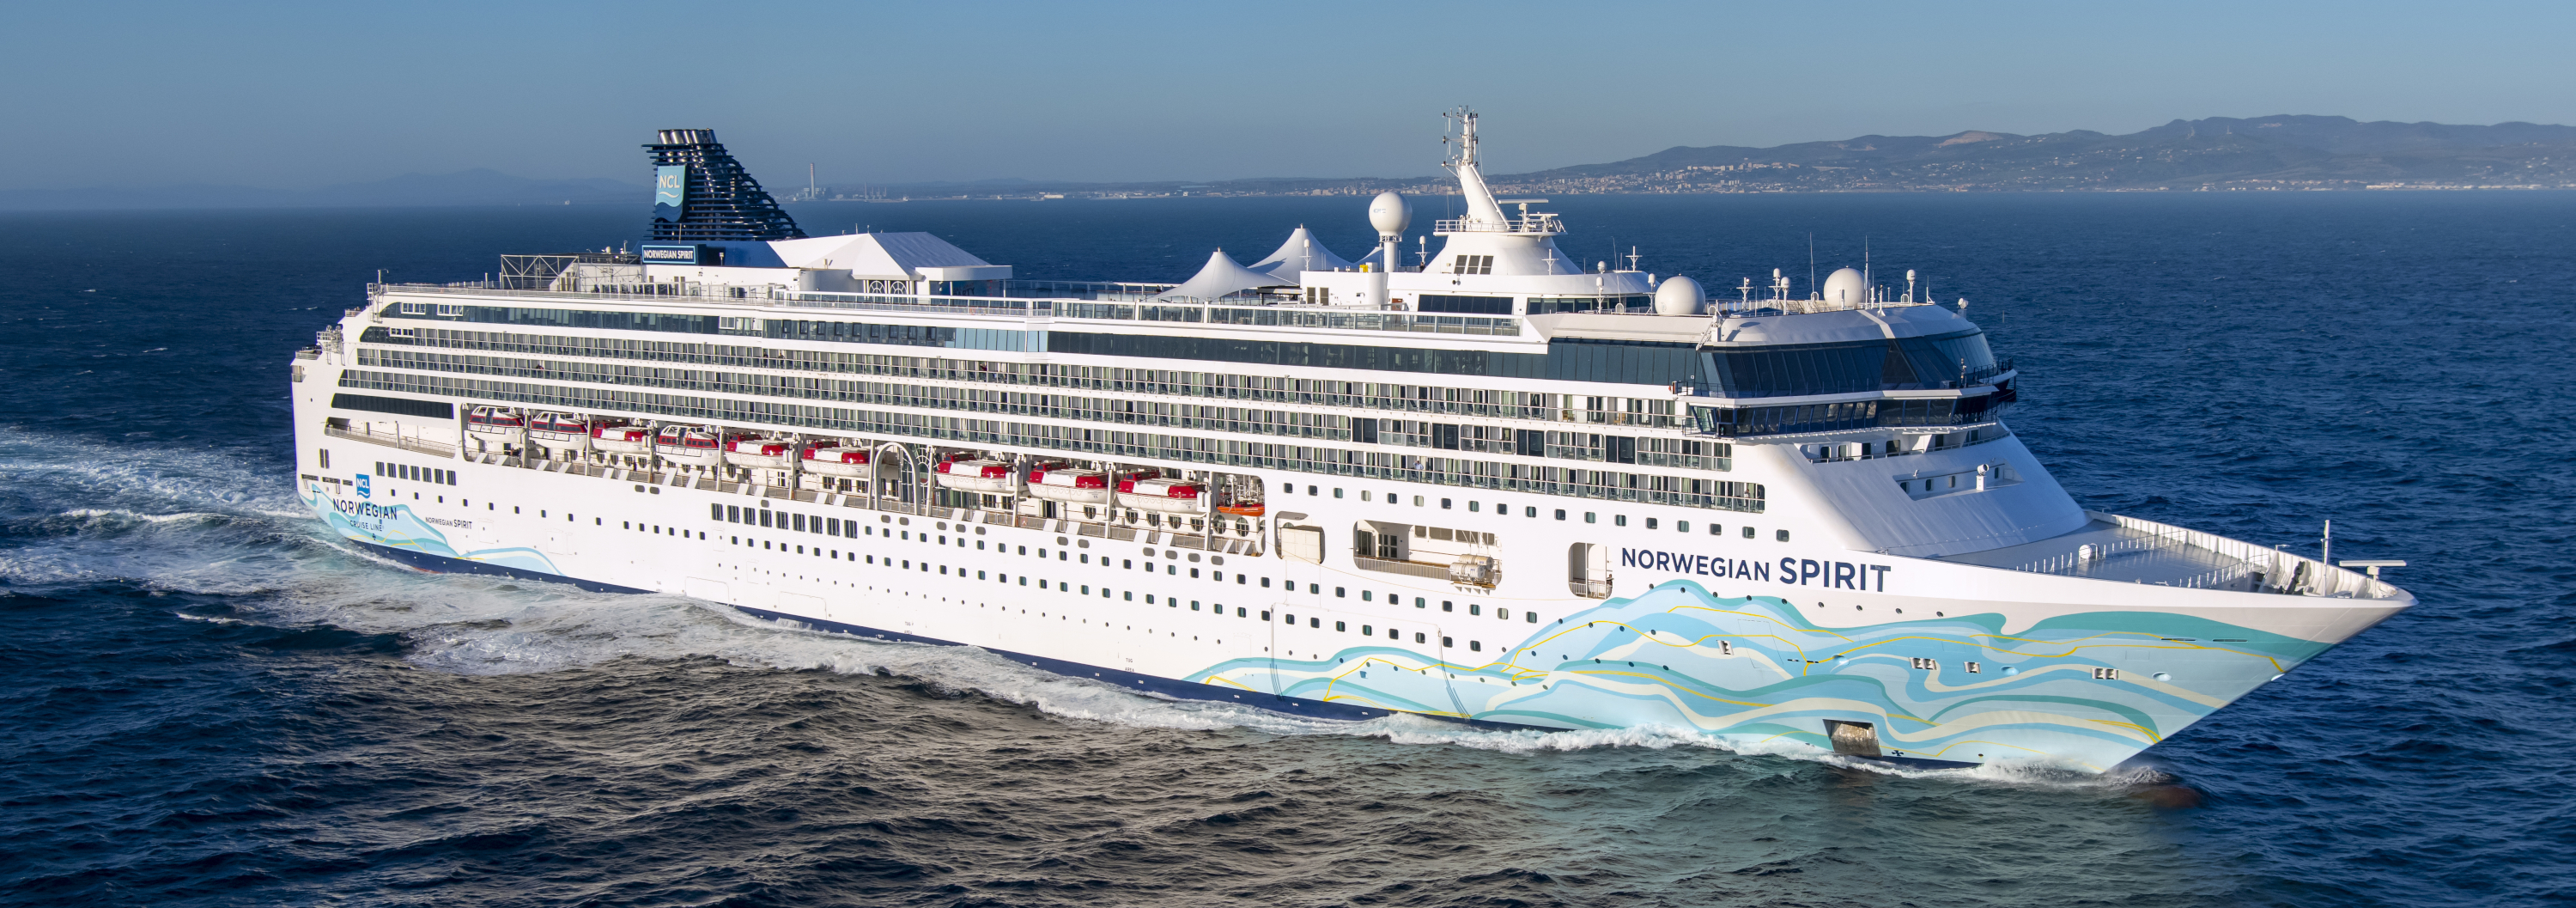 Malta & Italy Cruise on Norwegian Spirit